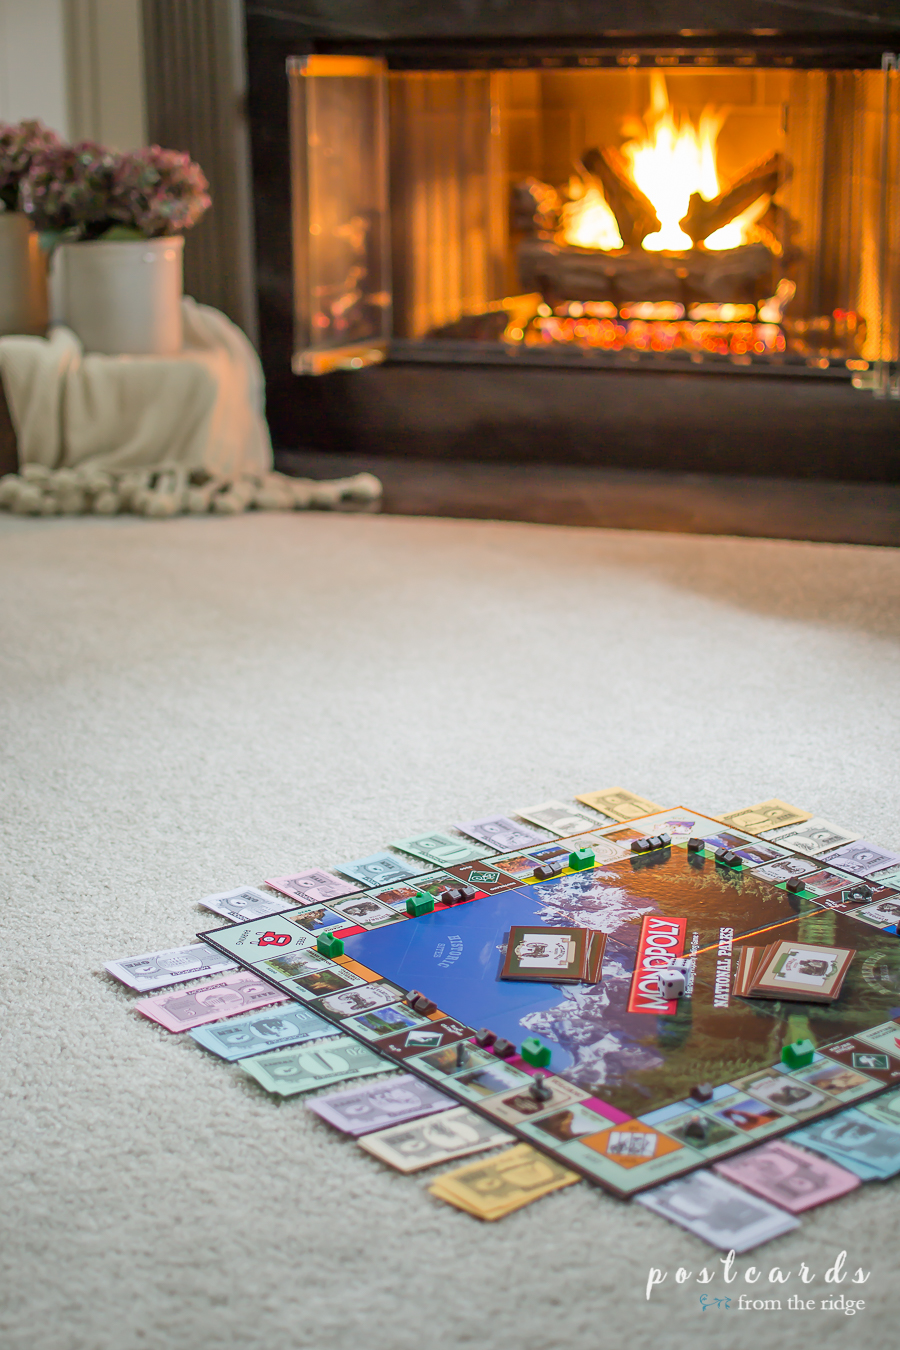 cozy carpeted floor with game board and fireplace